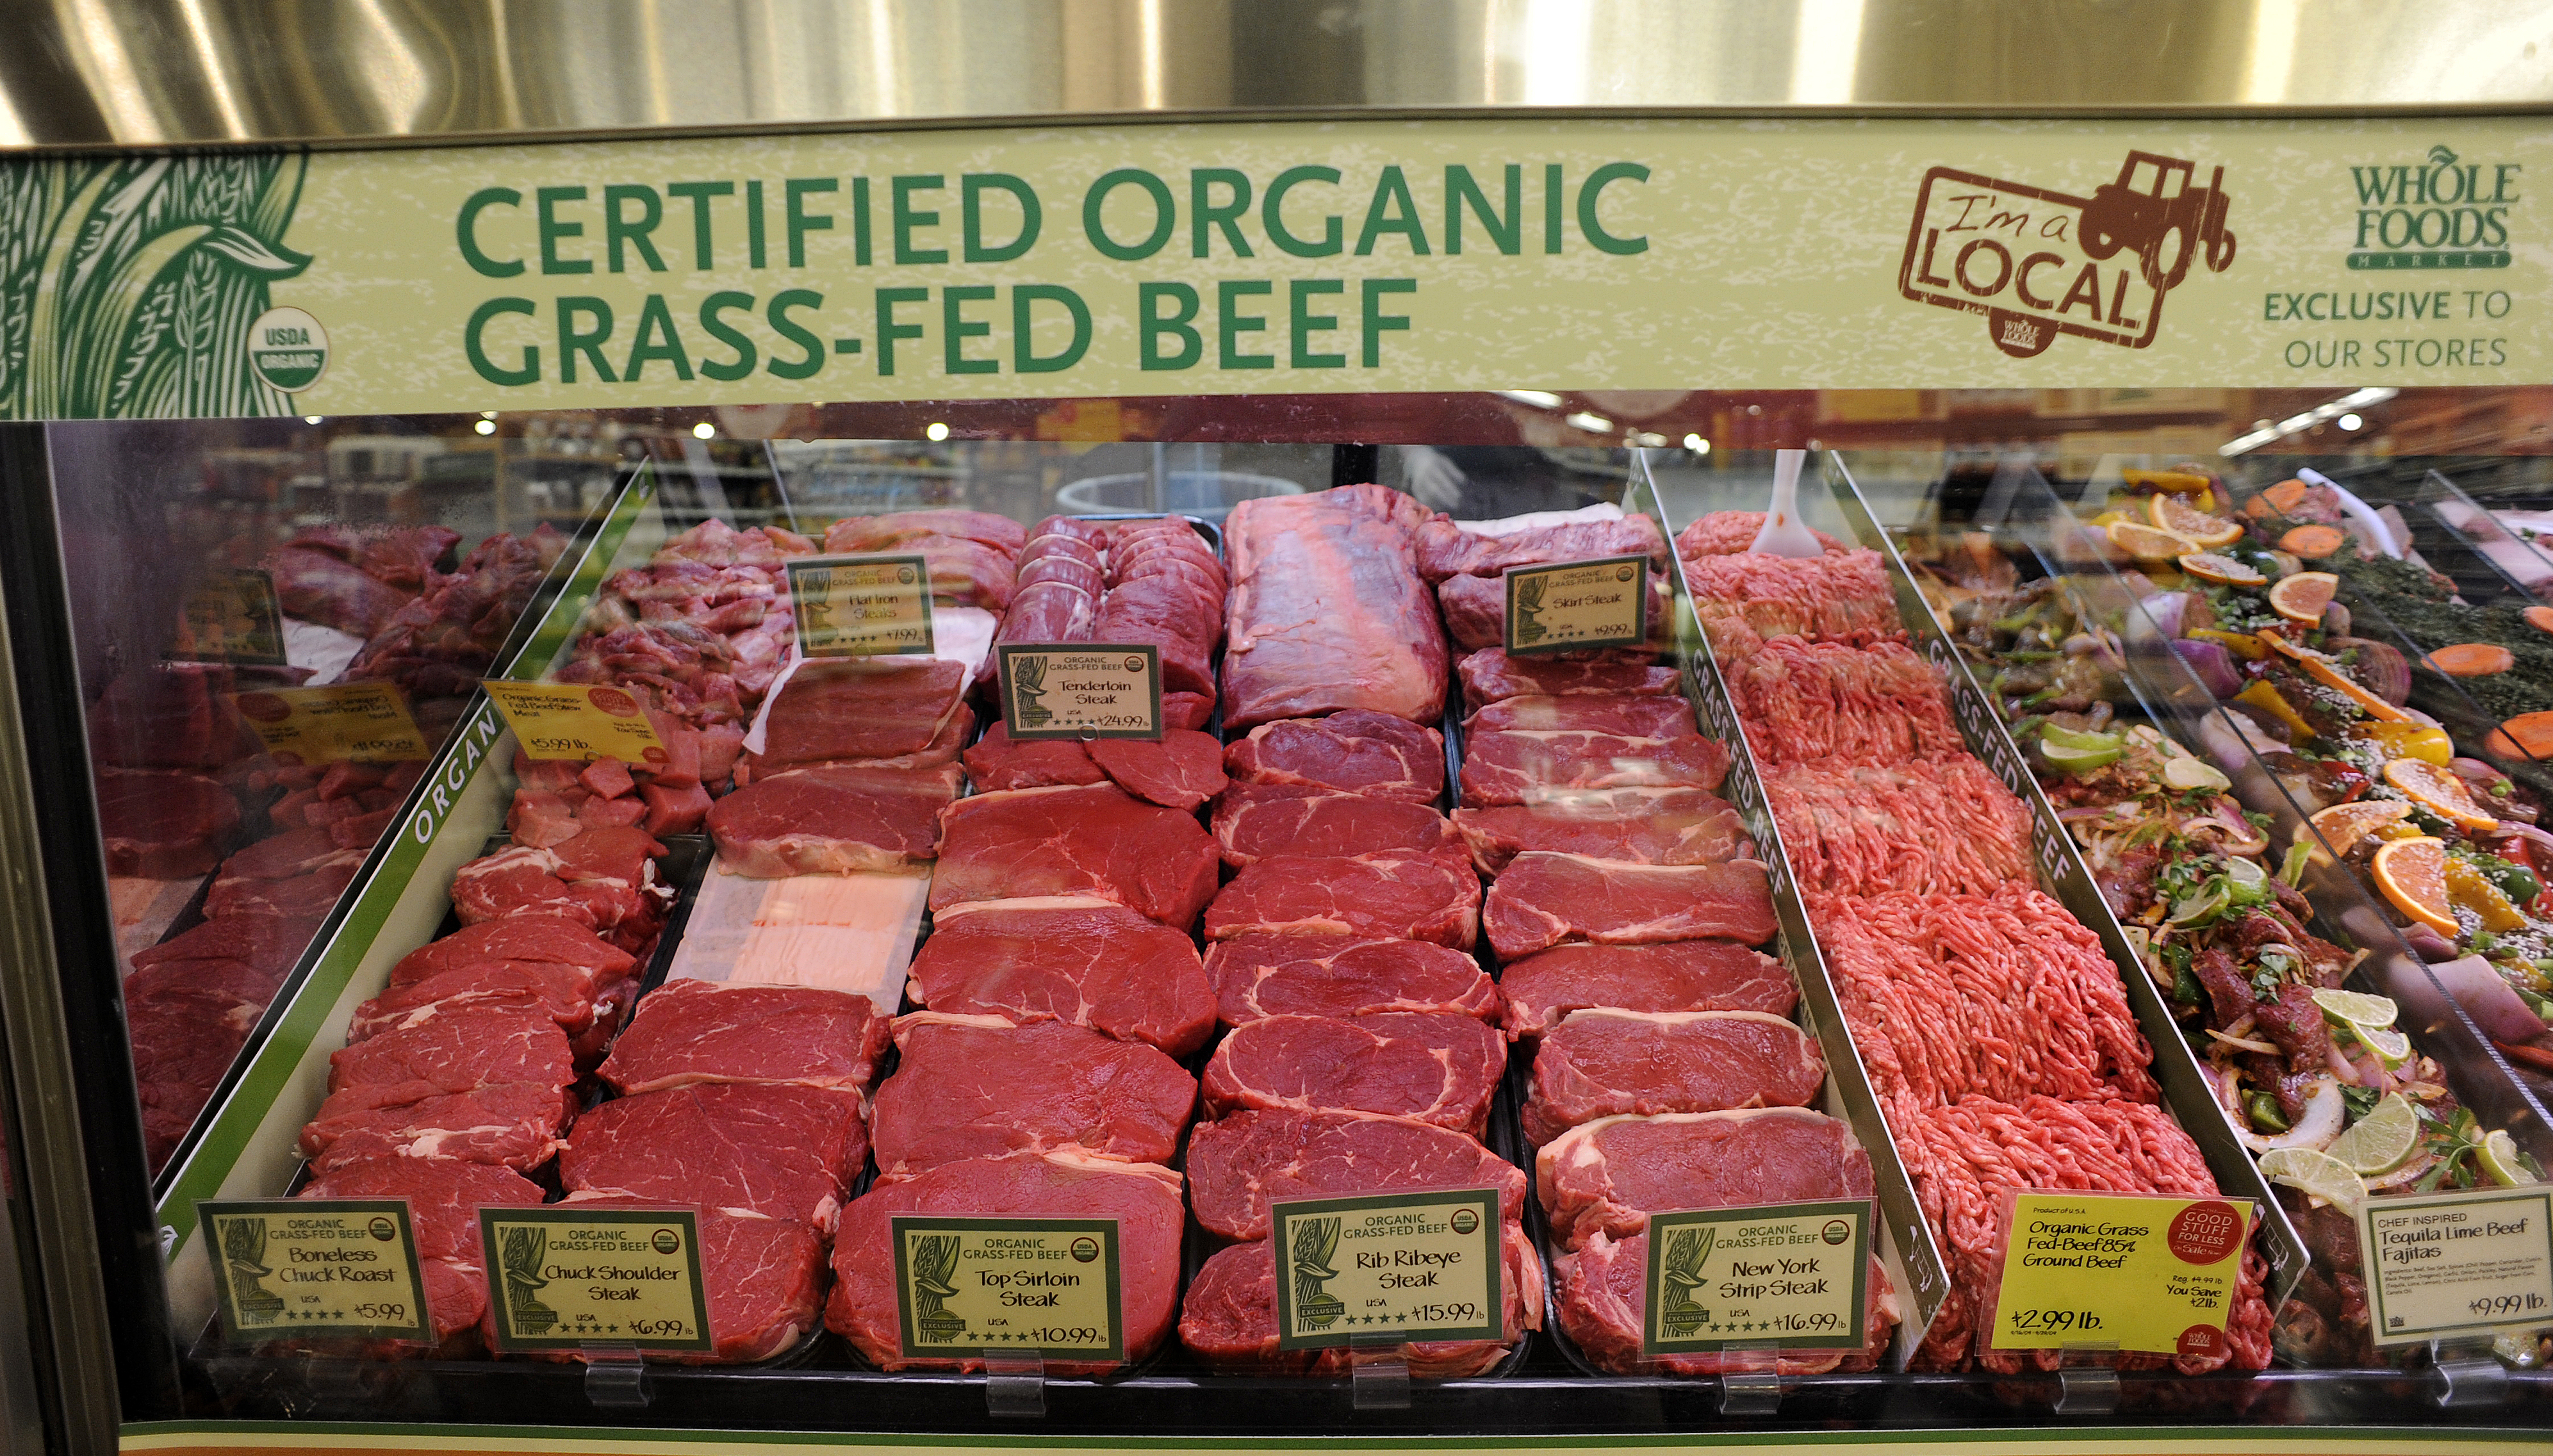 FEXXFDARAPAHOEBEEF_CM55 Start to finish story on organic grass fed beef from the Arapaho Ranch in Wyoming. The beef in the case at the Whole Foods Market in Boulder on Monday, September 21, 2009. Cyrus McCrimmon, The Denver Post